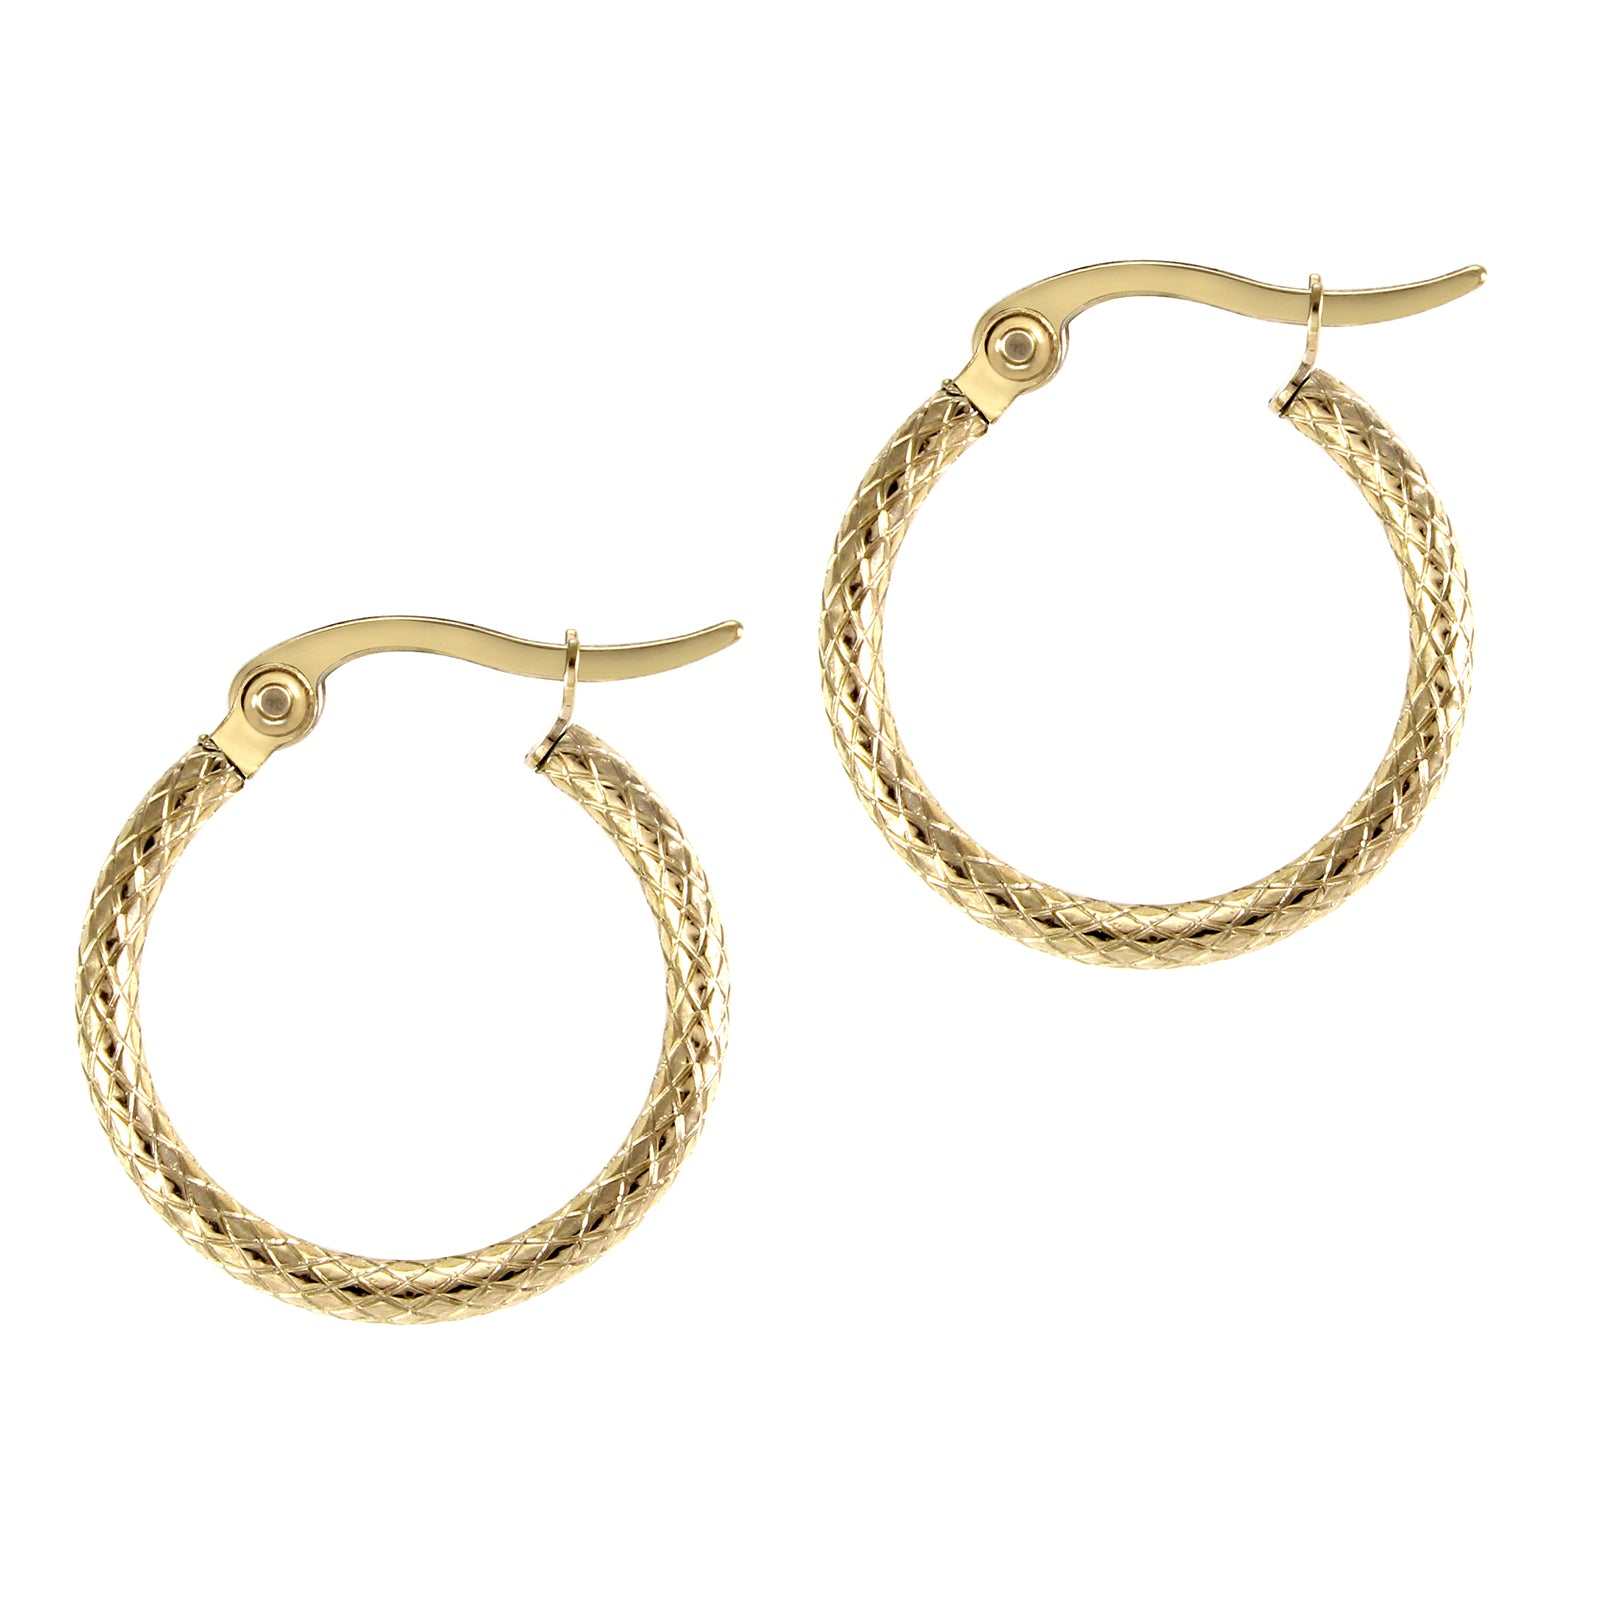 MNC-ER343-B2-22mm Steel & Gold Textured Hoop Earrings